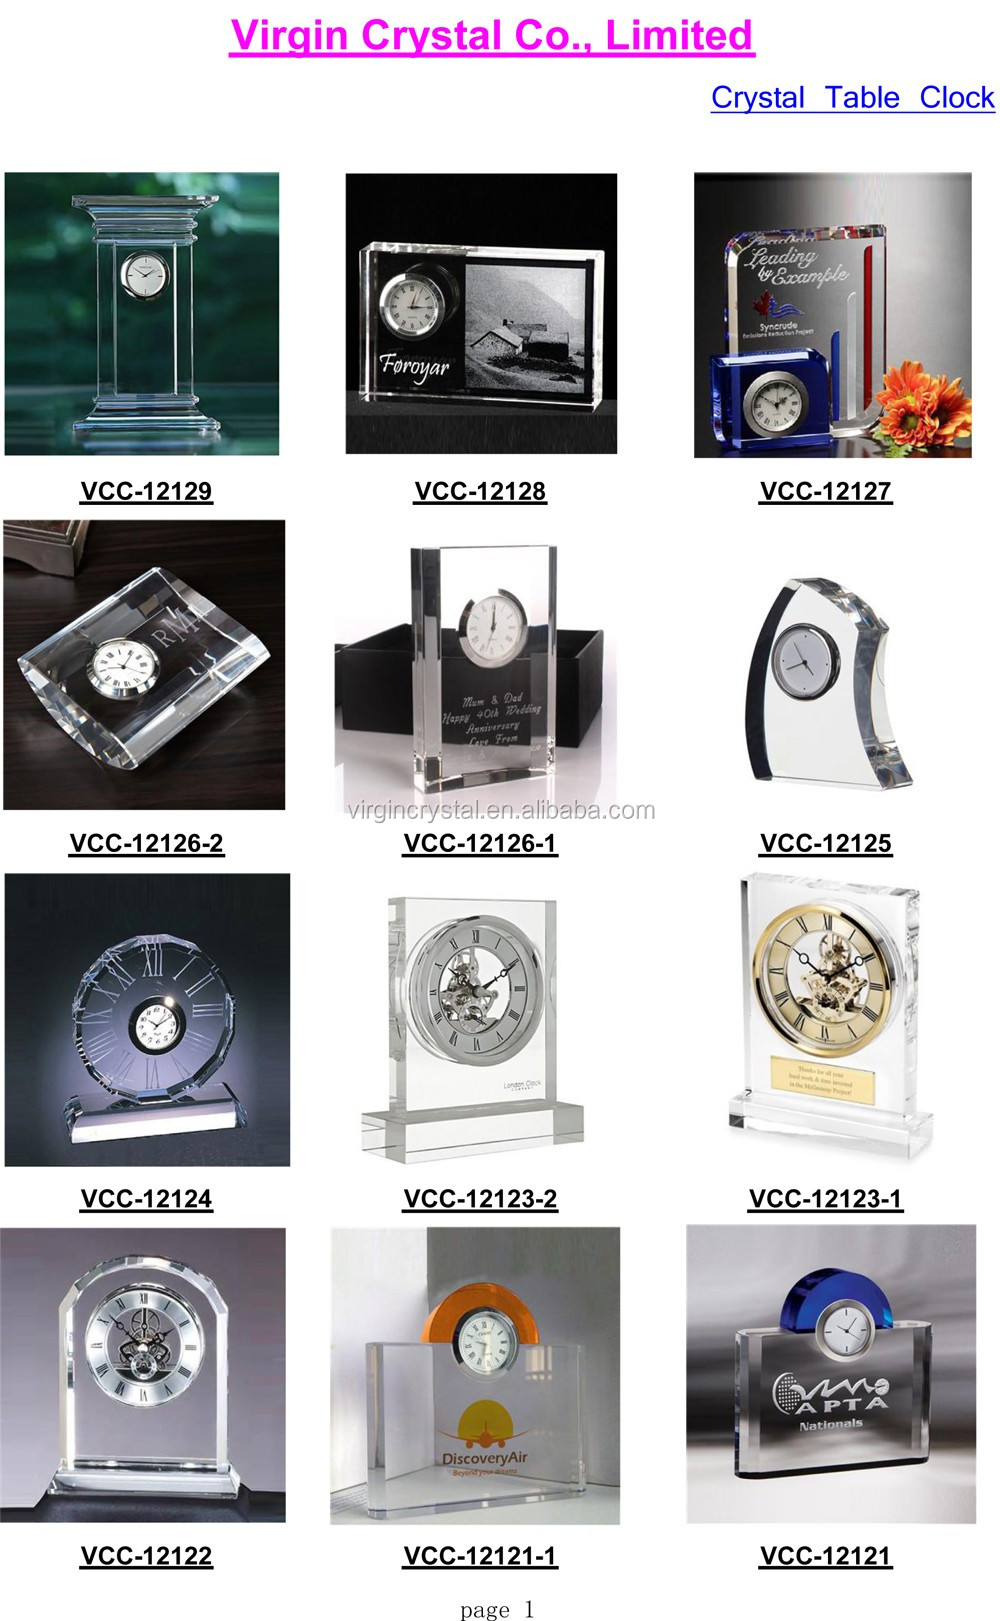 2016 Crystal Table Clock and Mechanical clock Catalog-1.jpg